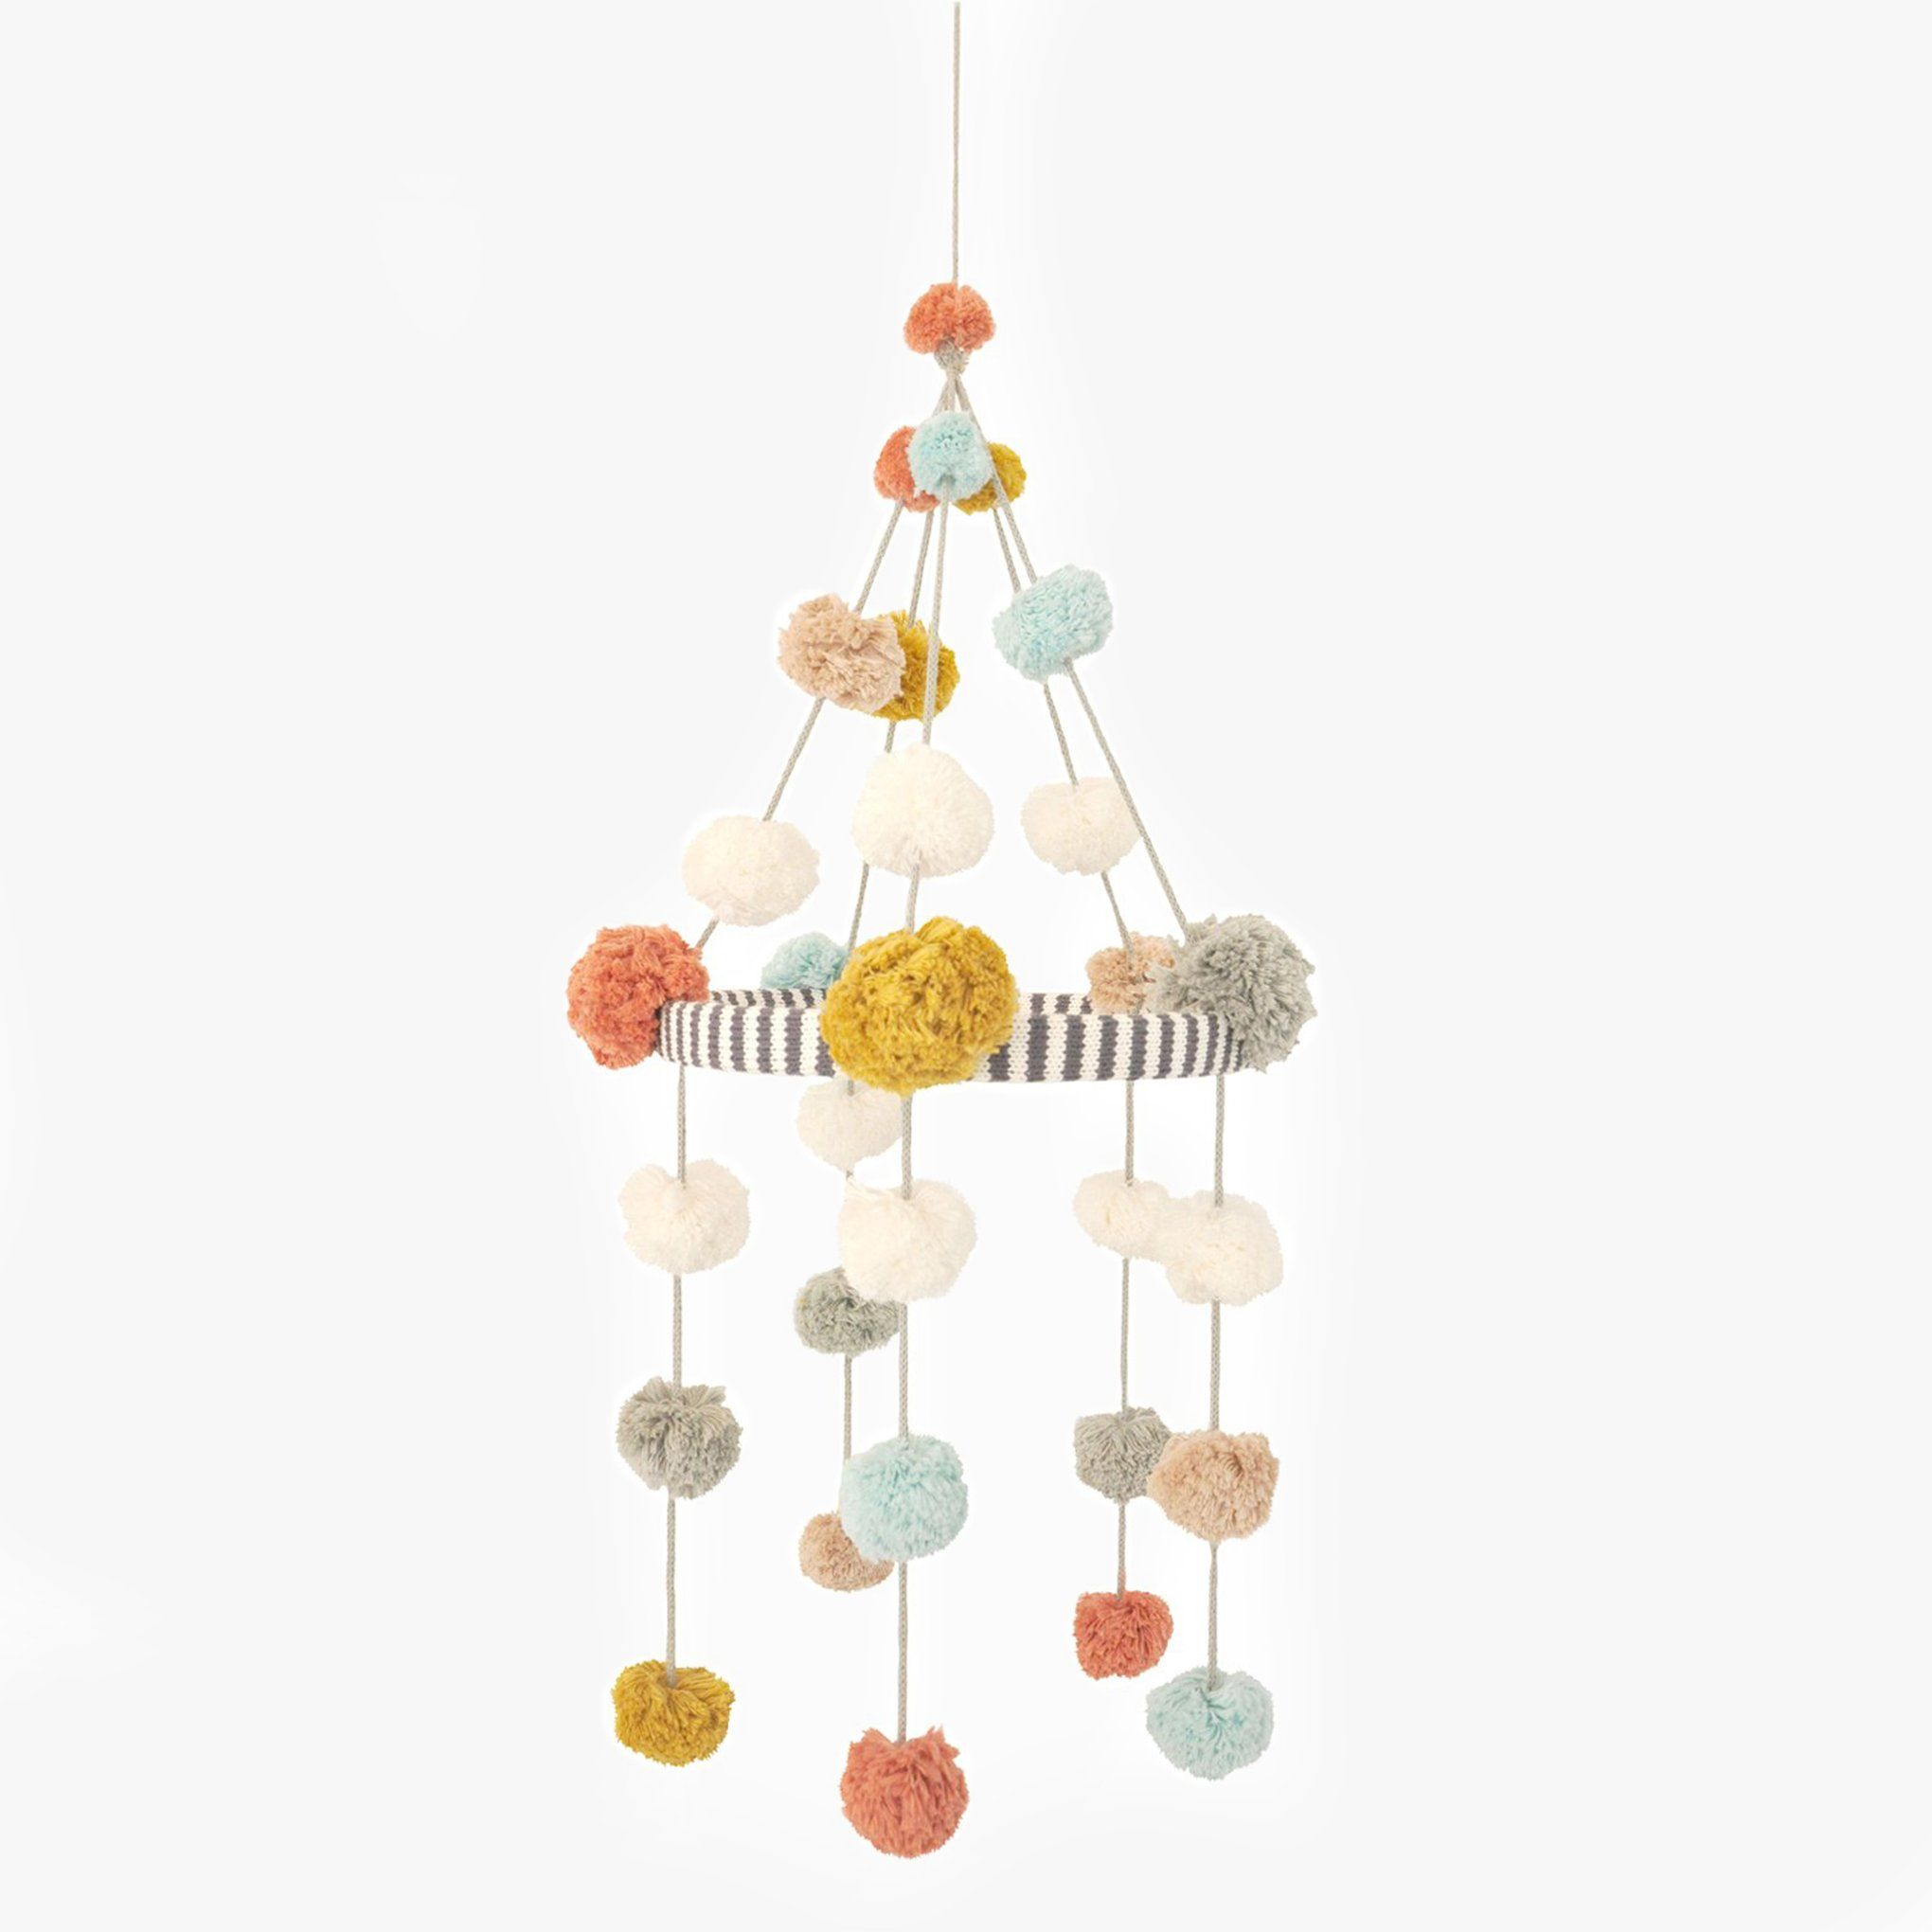 Pom Pom Mobile by Blabla. A sweet and colorful handmade mobile for your little ones. Measures 13